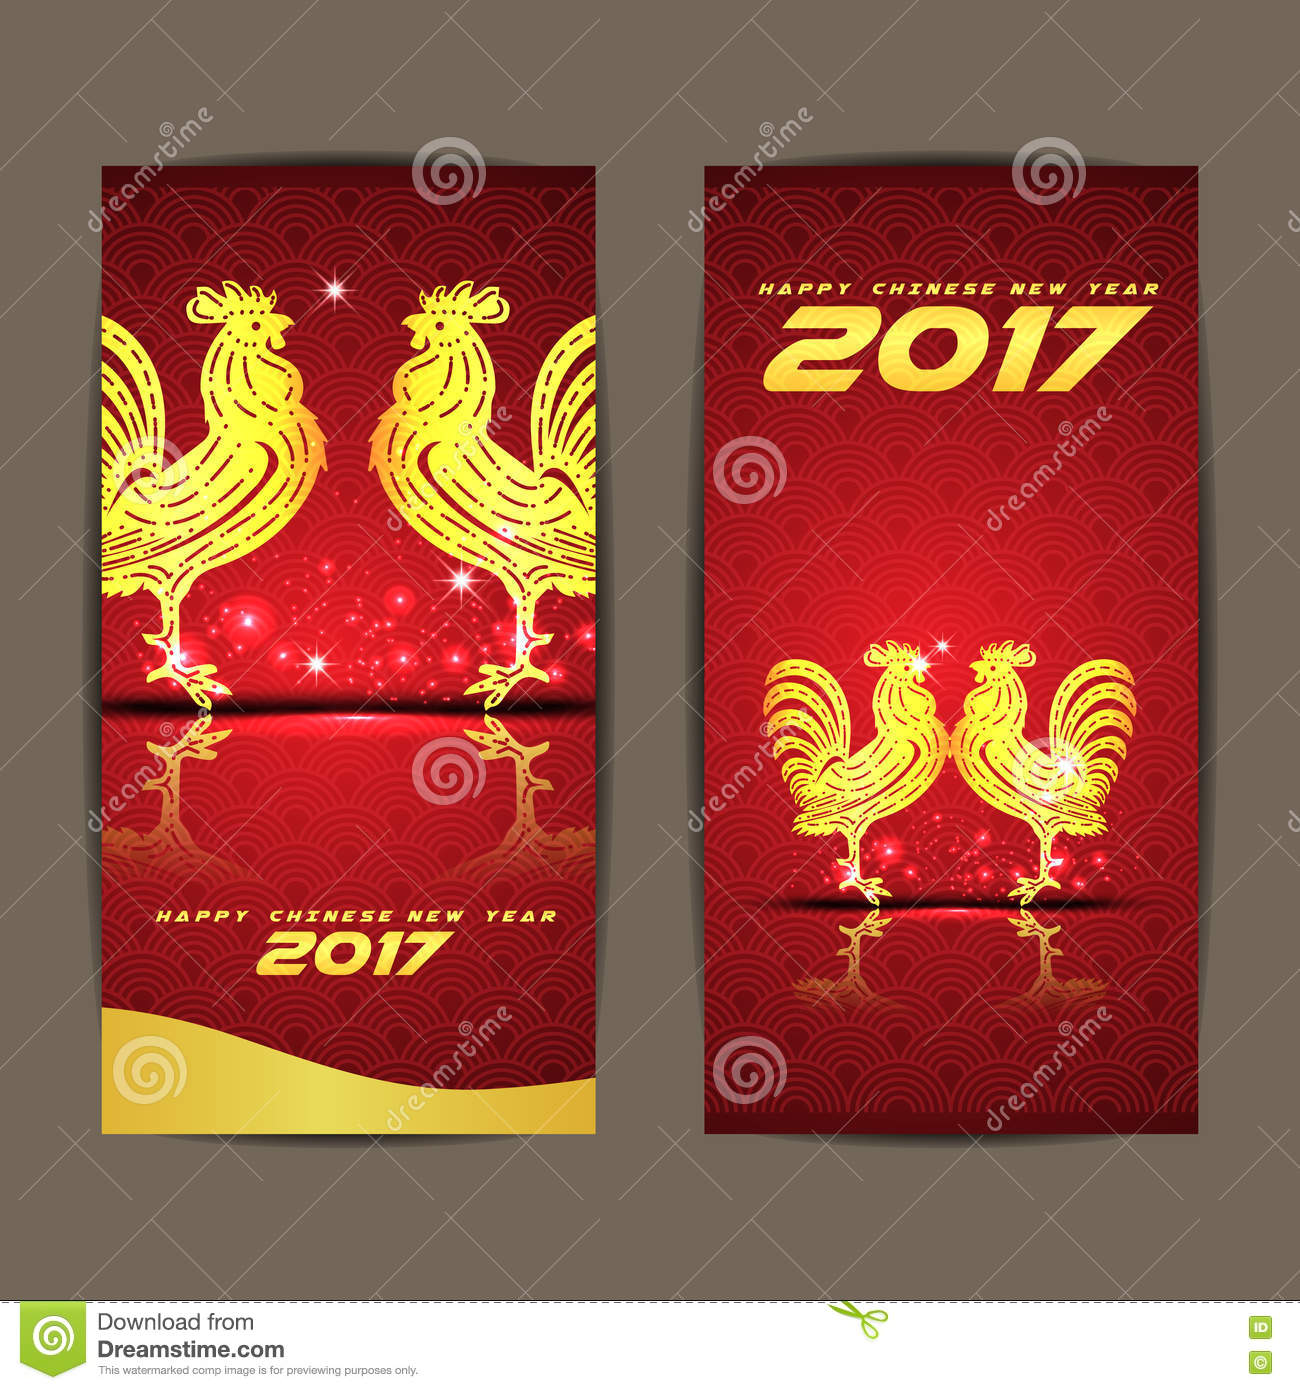 download happy chinese new year 2017 the year of chicken and red background stock vector